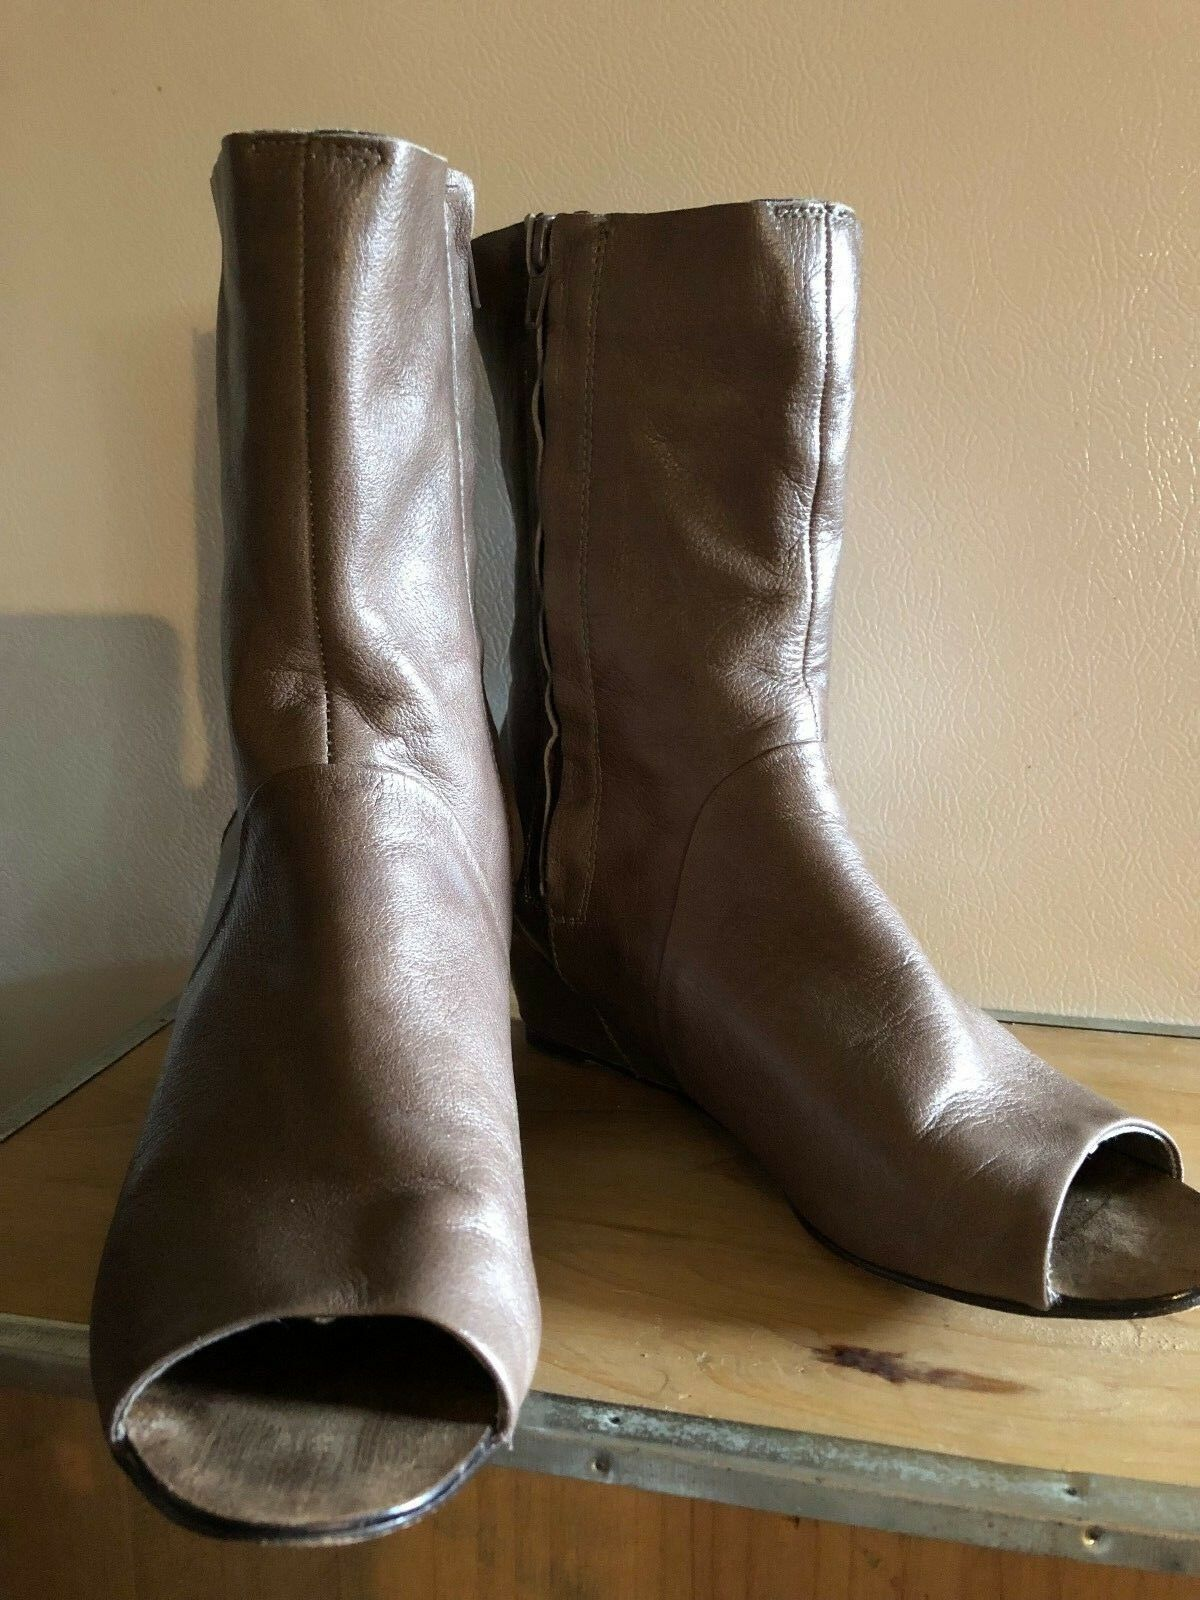 Leather Boots Bootie Dolce Vita Wedge Boots Leather Very Soft Peep Toe Zipper Taupe Size 7.5 19d59b